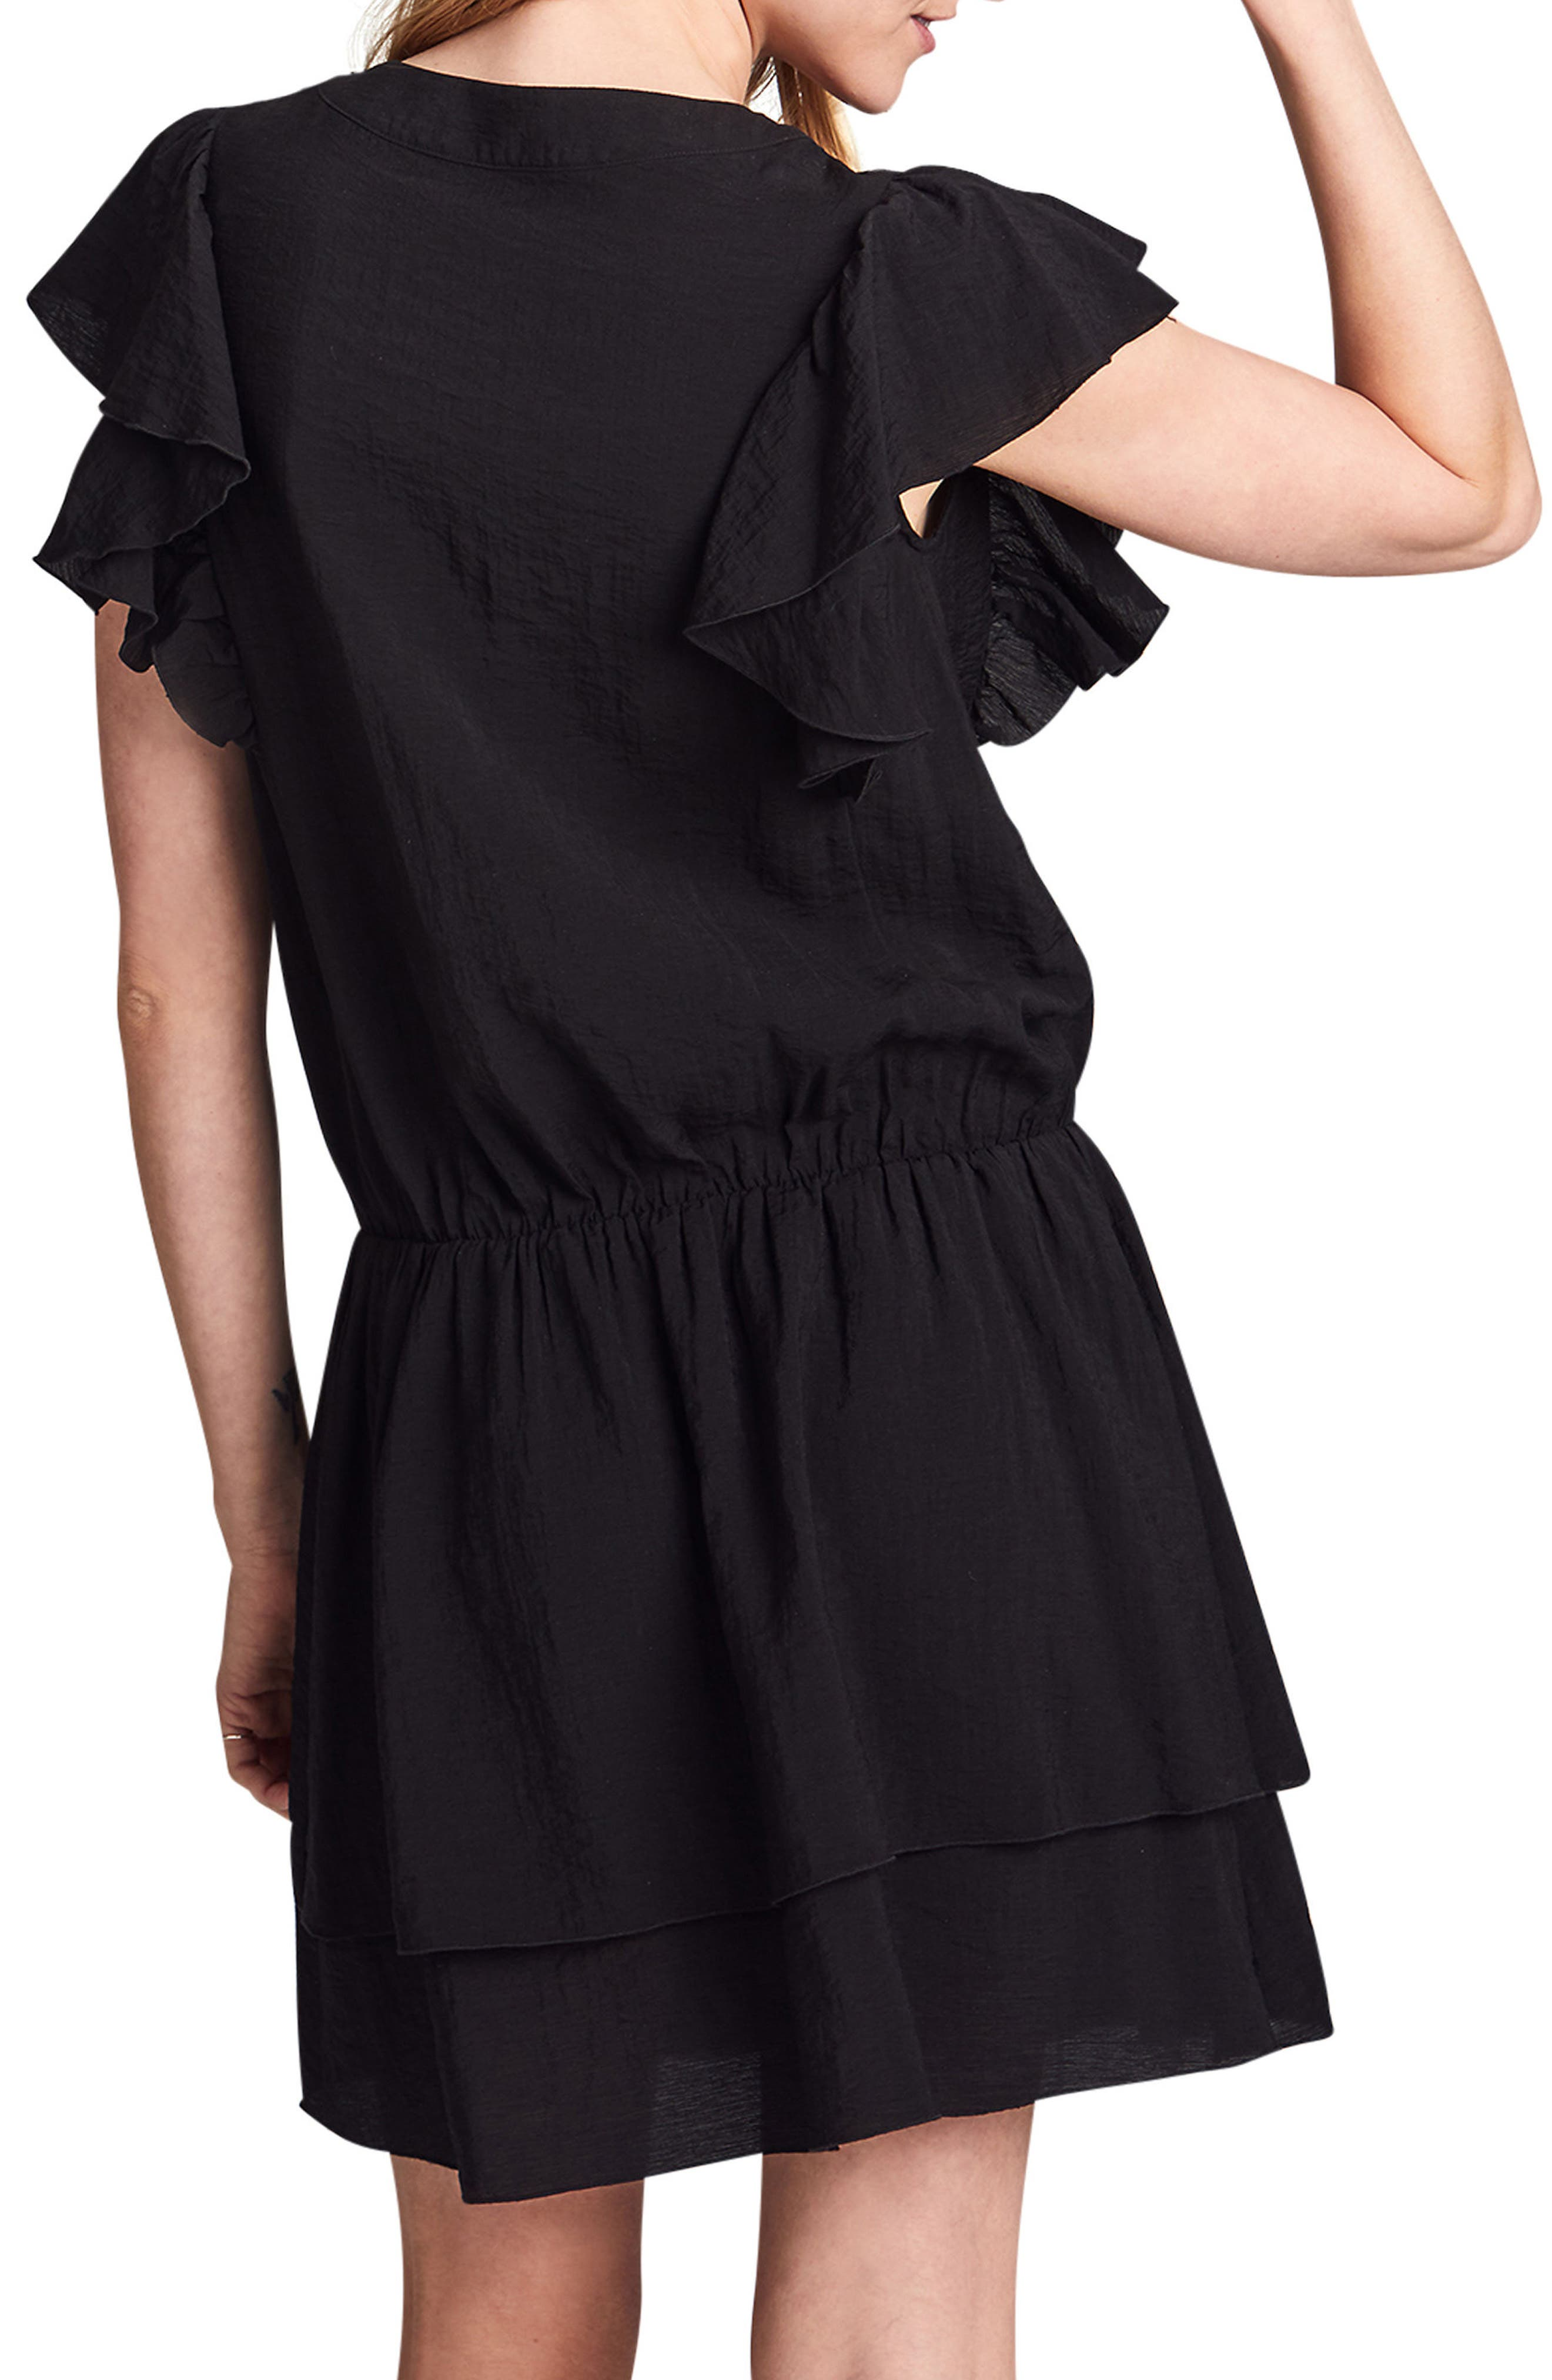 Naomi Nursing Dress,                             Alternate thumbnail 2, color,                             BLACK